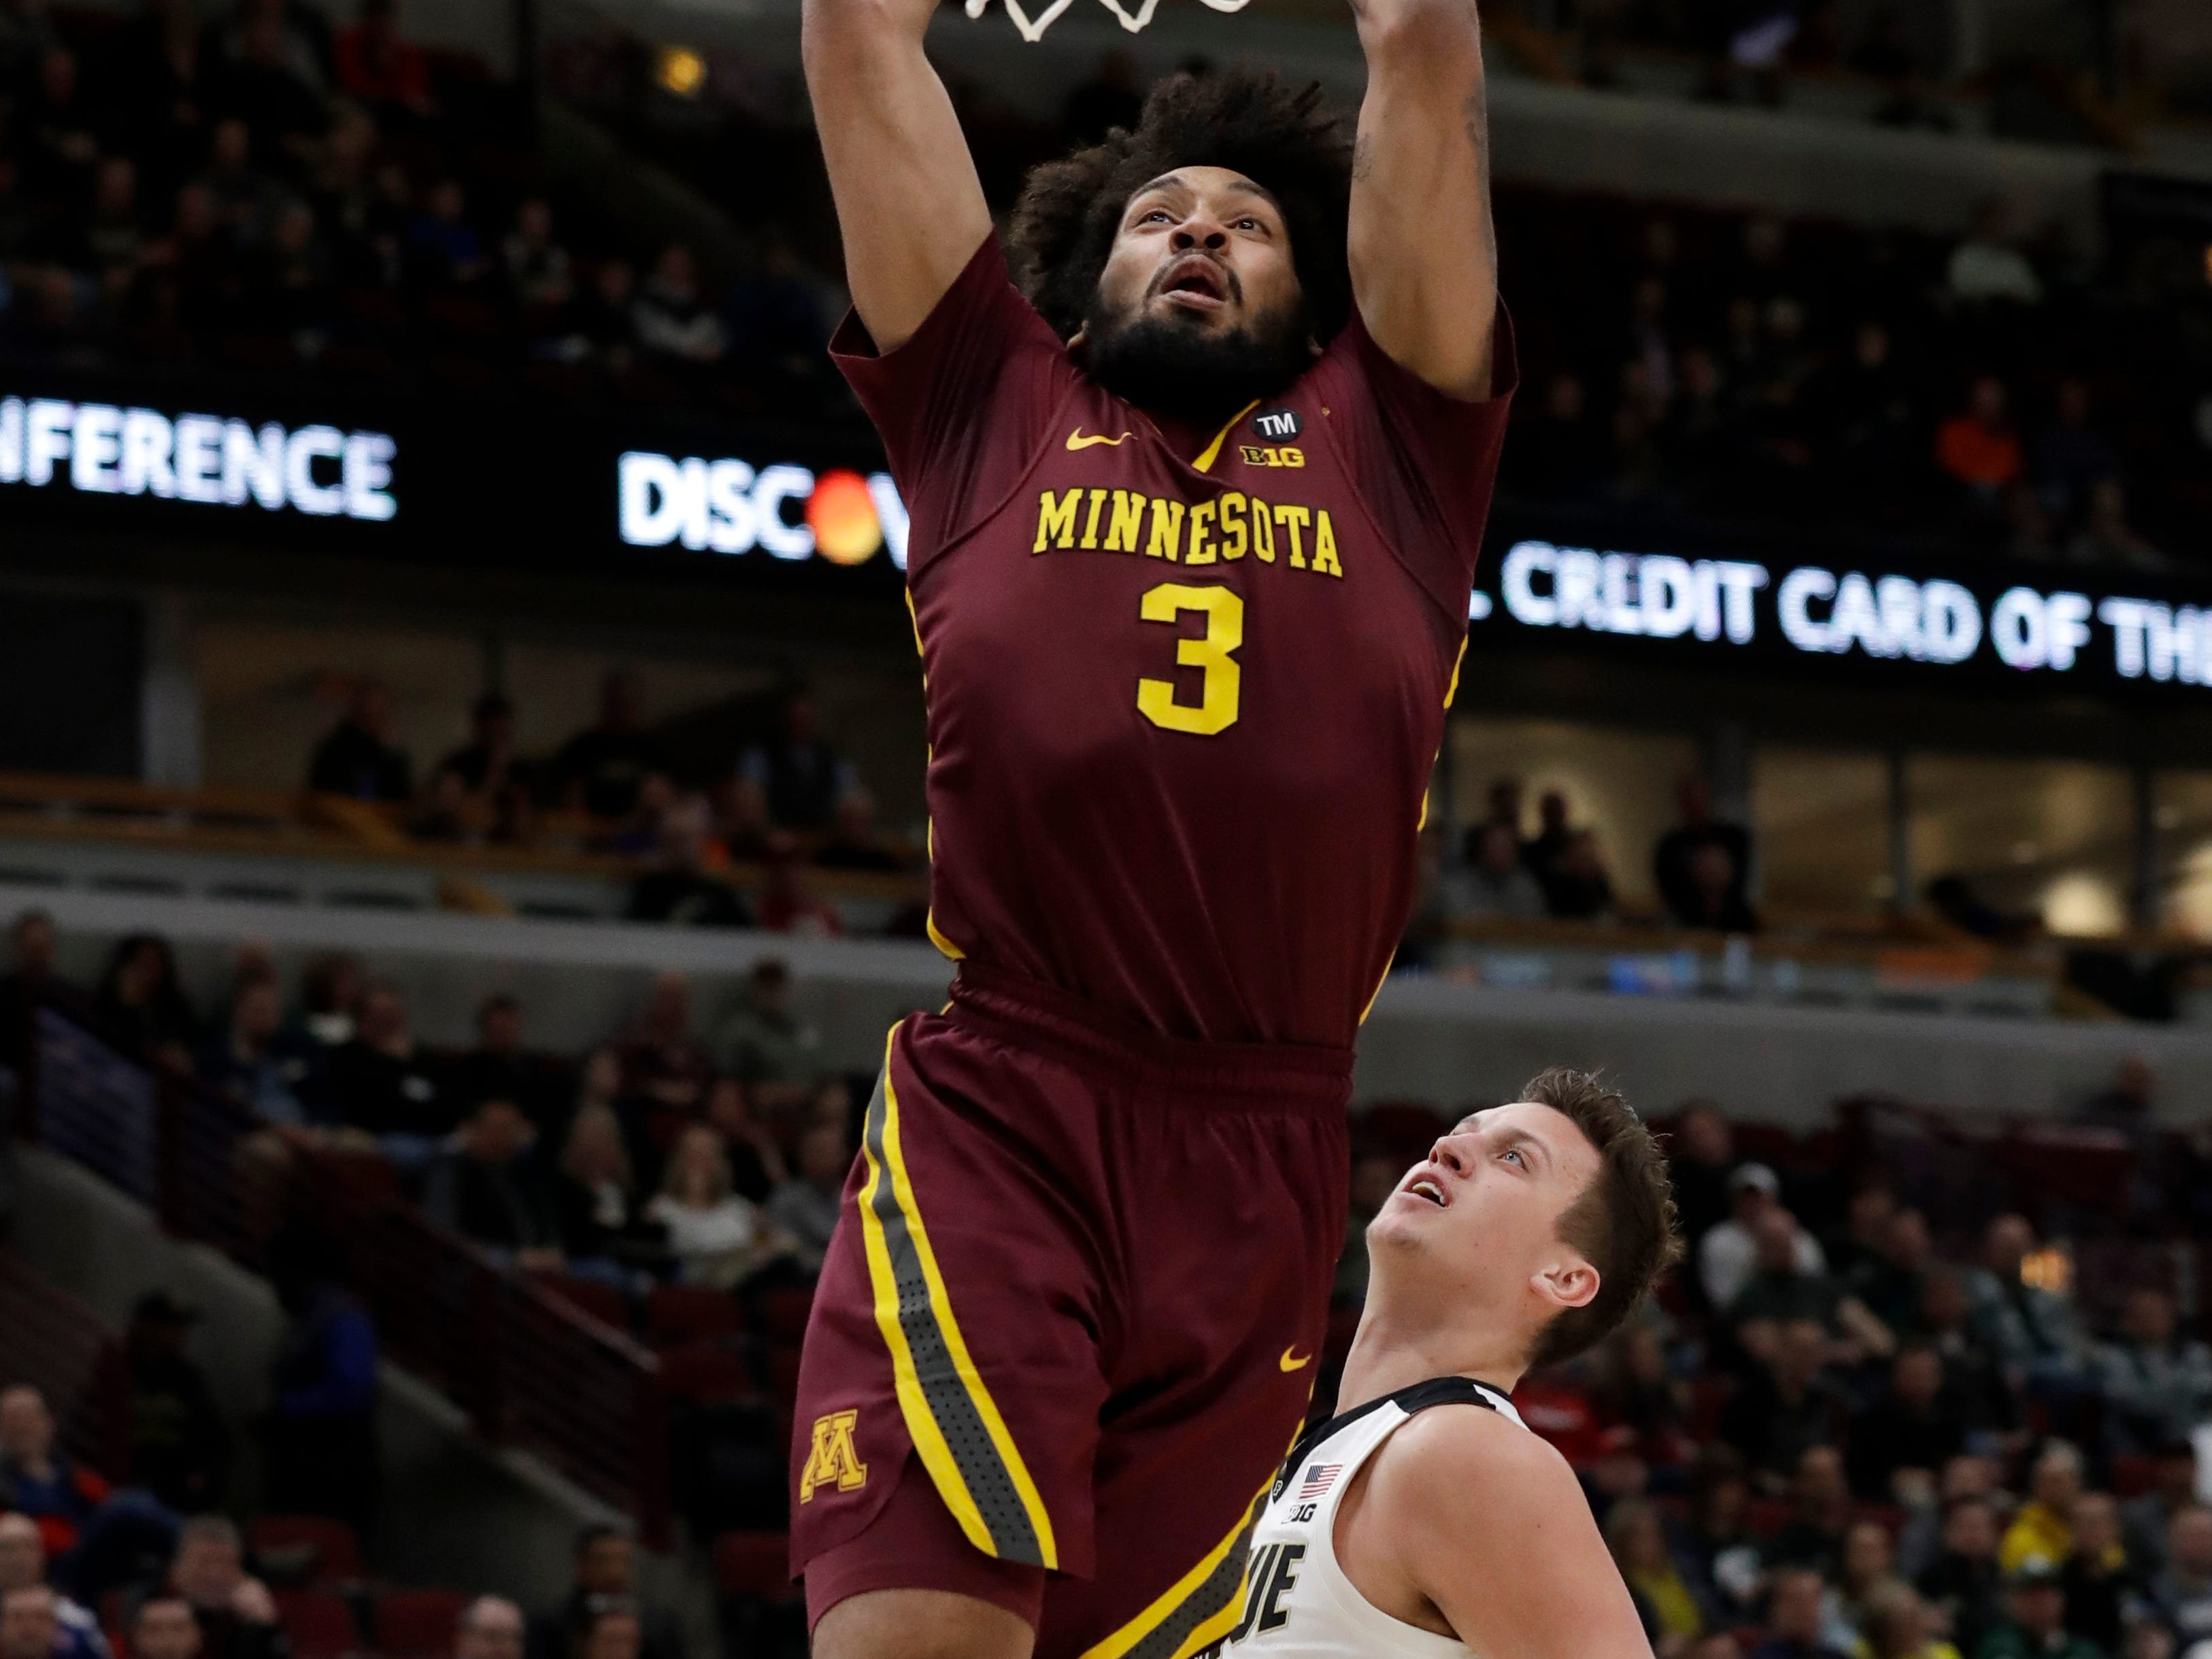 Minnesota's Jordan Murphy (3) goes up for a dunk against Purdue's Grady Eifert (24) during the first half of an NCAA college basketball game in the quarterfinals of the Big Ten Conference tournament, Friday, March 15, 2019, in Chicago. (AP Photo/Nam Y. Huh)